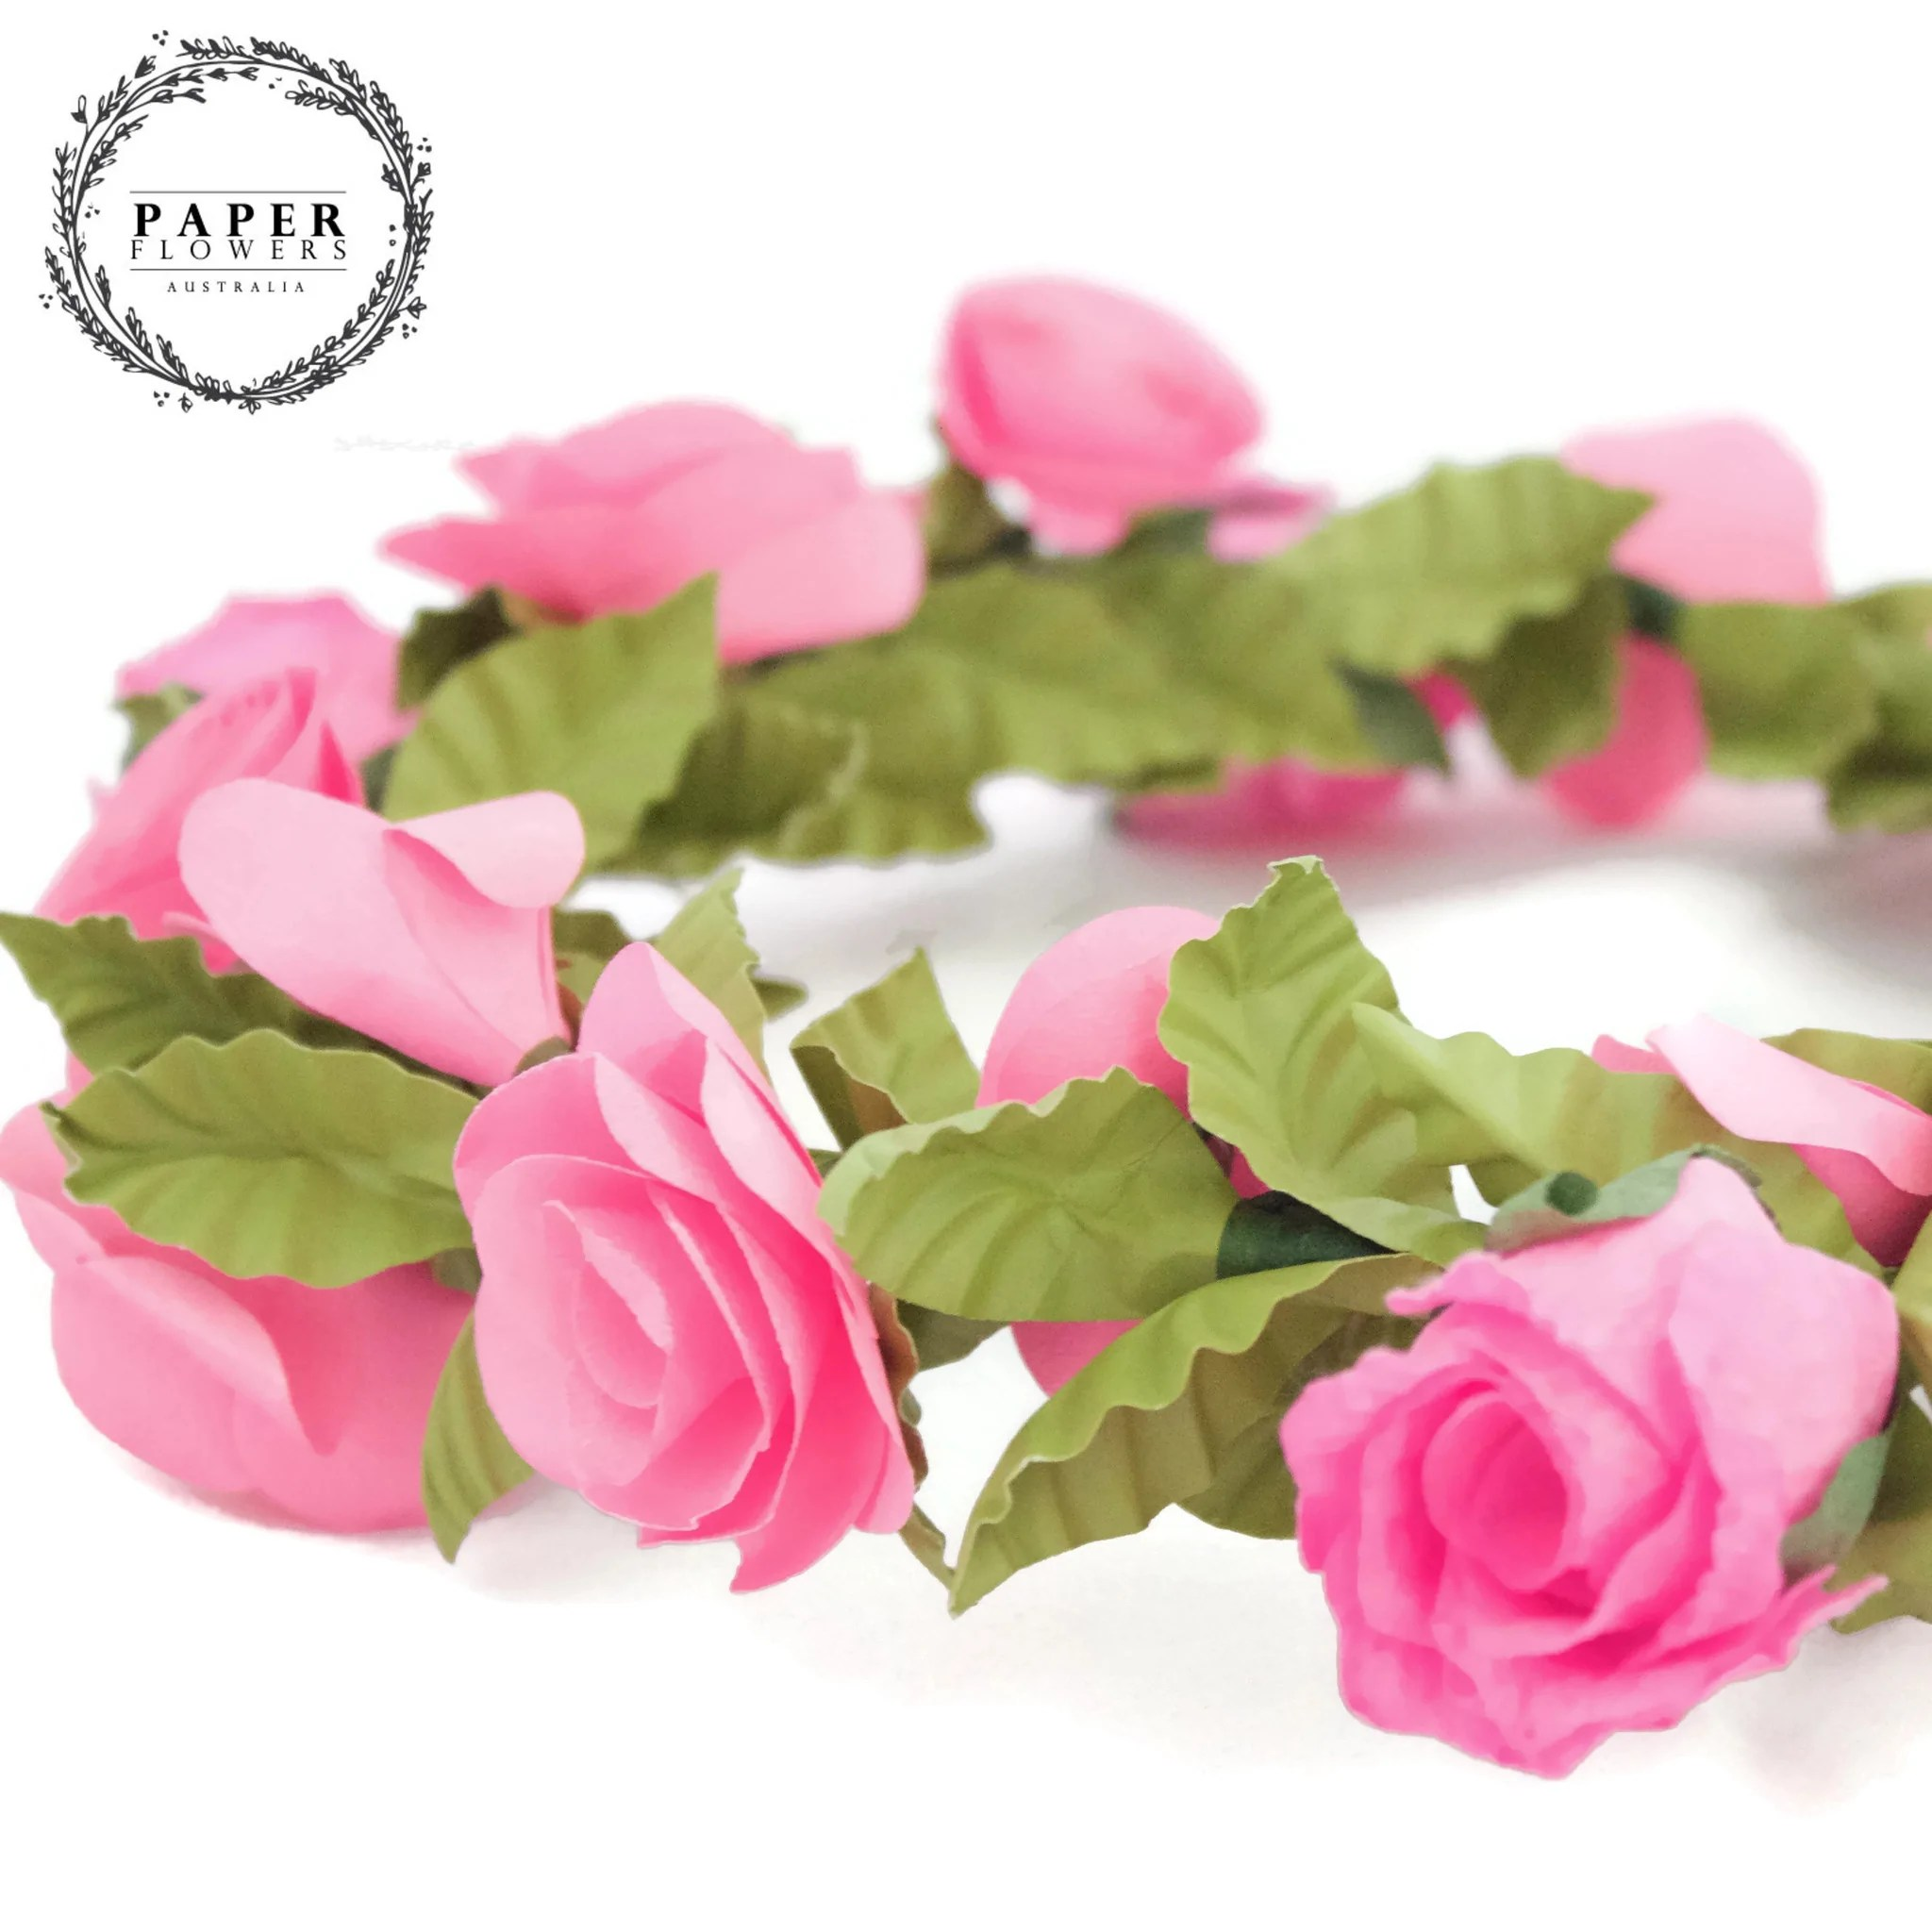 Pink Flowers Australia Childs Flower Crown Hot Pink Paper Flowers Australia